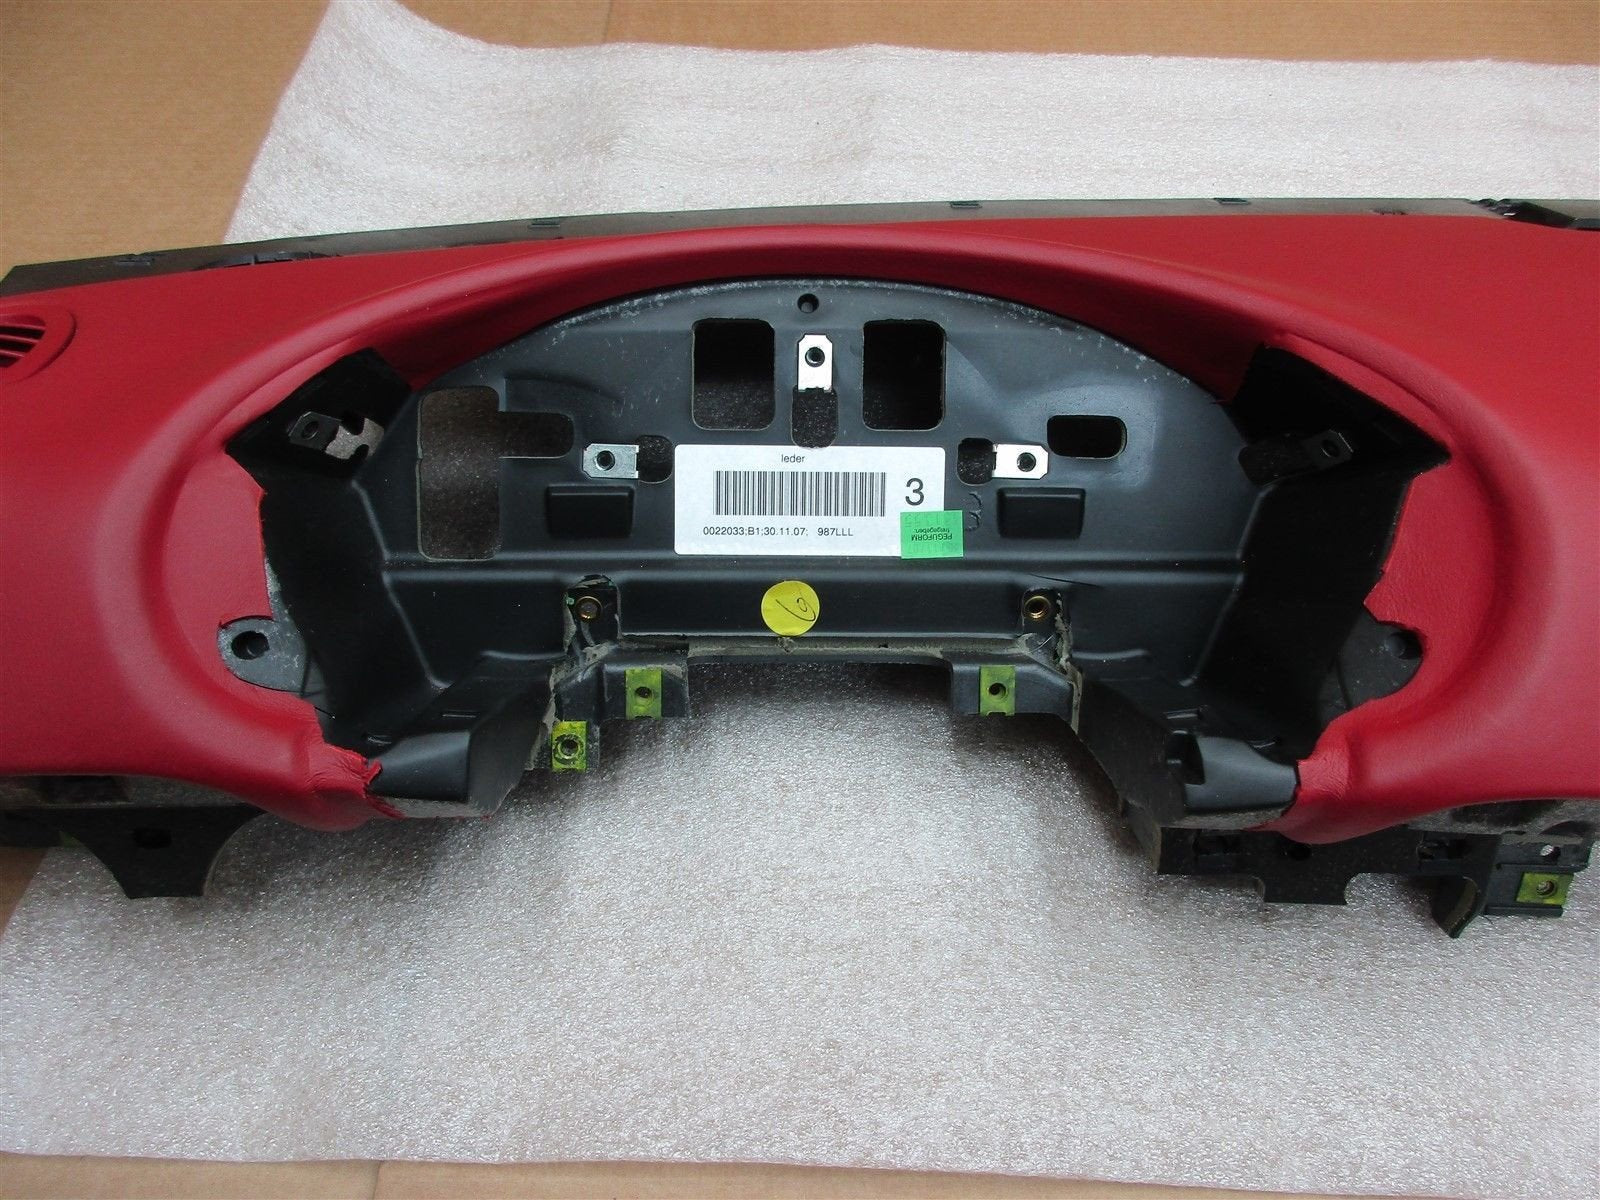 08 Boxster S Limited EDITION Porsche 987 DASH BOARD TRIM 98755210117 49,923